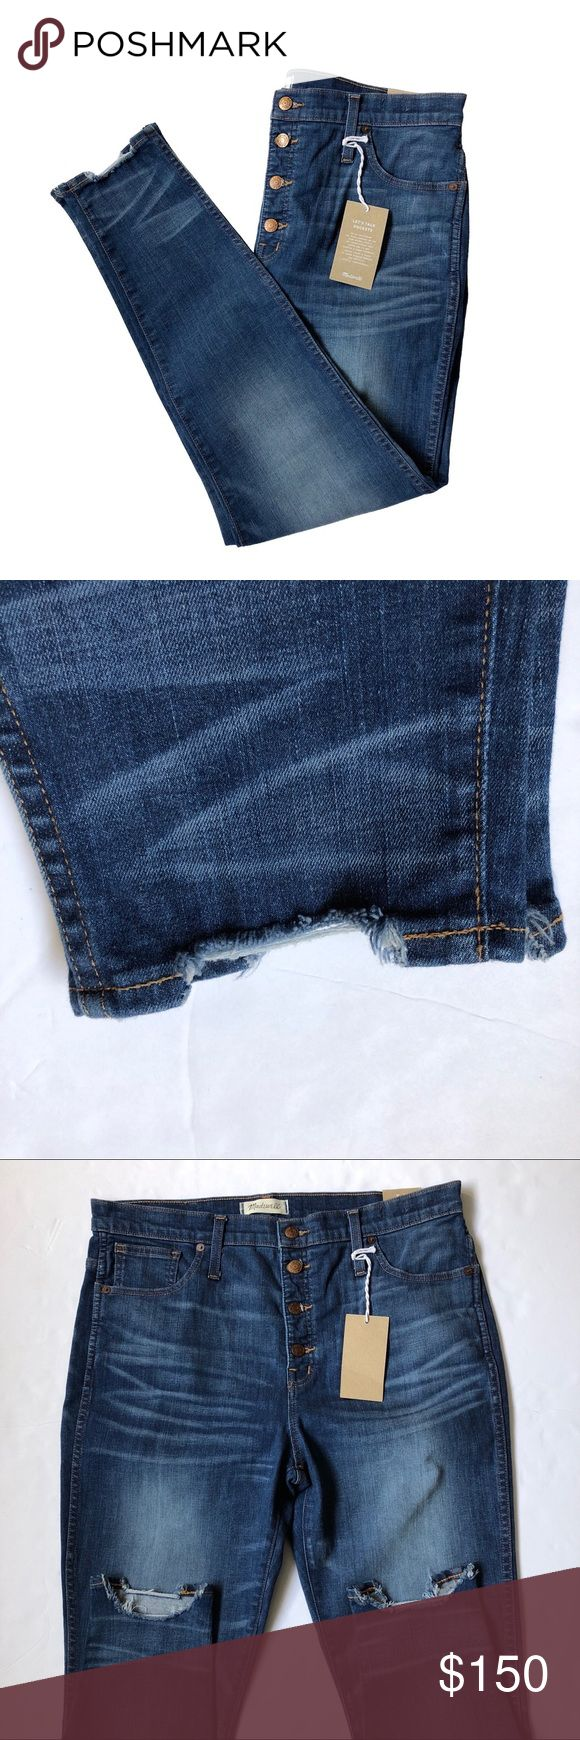 """Madewell High-Rise Chewed-Hem Skinny Jeans Size 32 Copeland wash chewed-hem skinny jeans from Madewell. New with tags, never worn. Size 32.   88% cotton/8% poly/4% elastane denim A medium indigo wash with vintage-y """"chewed"""" hems. Copper hardware, contrast stitching, button-through fly. Fitted through hip and thigh with a skinny leg.  Measurements (not doubled, approximate and taken with garment laid flat): - Waist: 17.75"""" - Hips: 20.25"""" - Rise: 12.25"""" - Thigh: 11.5"""" - Inseam: 28.25"""" - Leg…"""